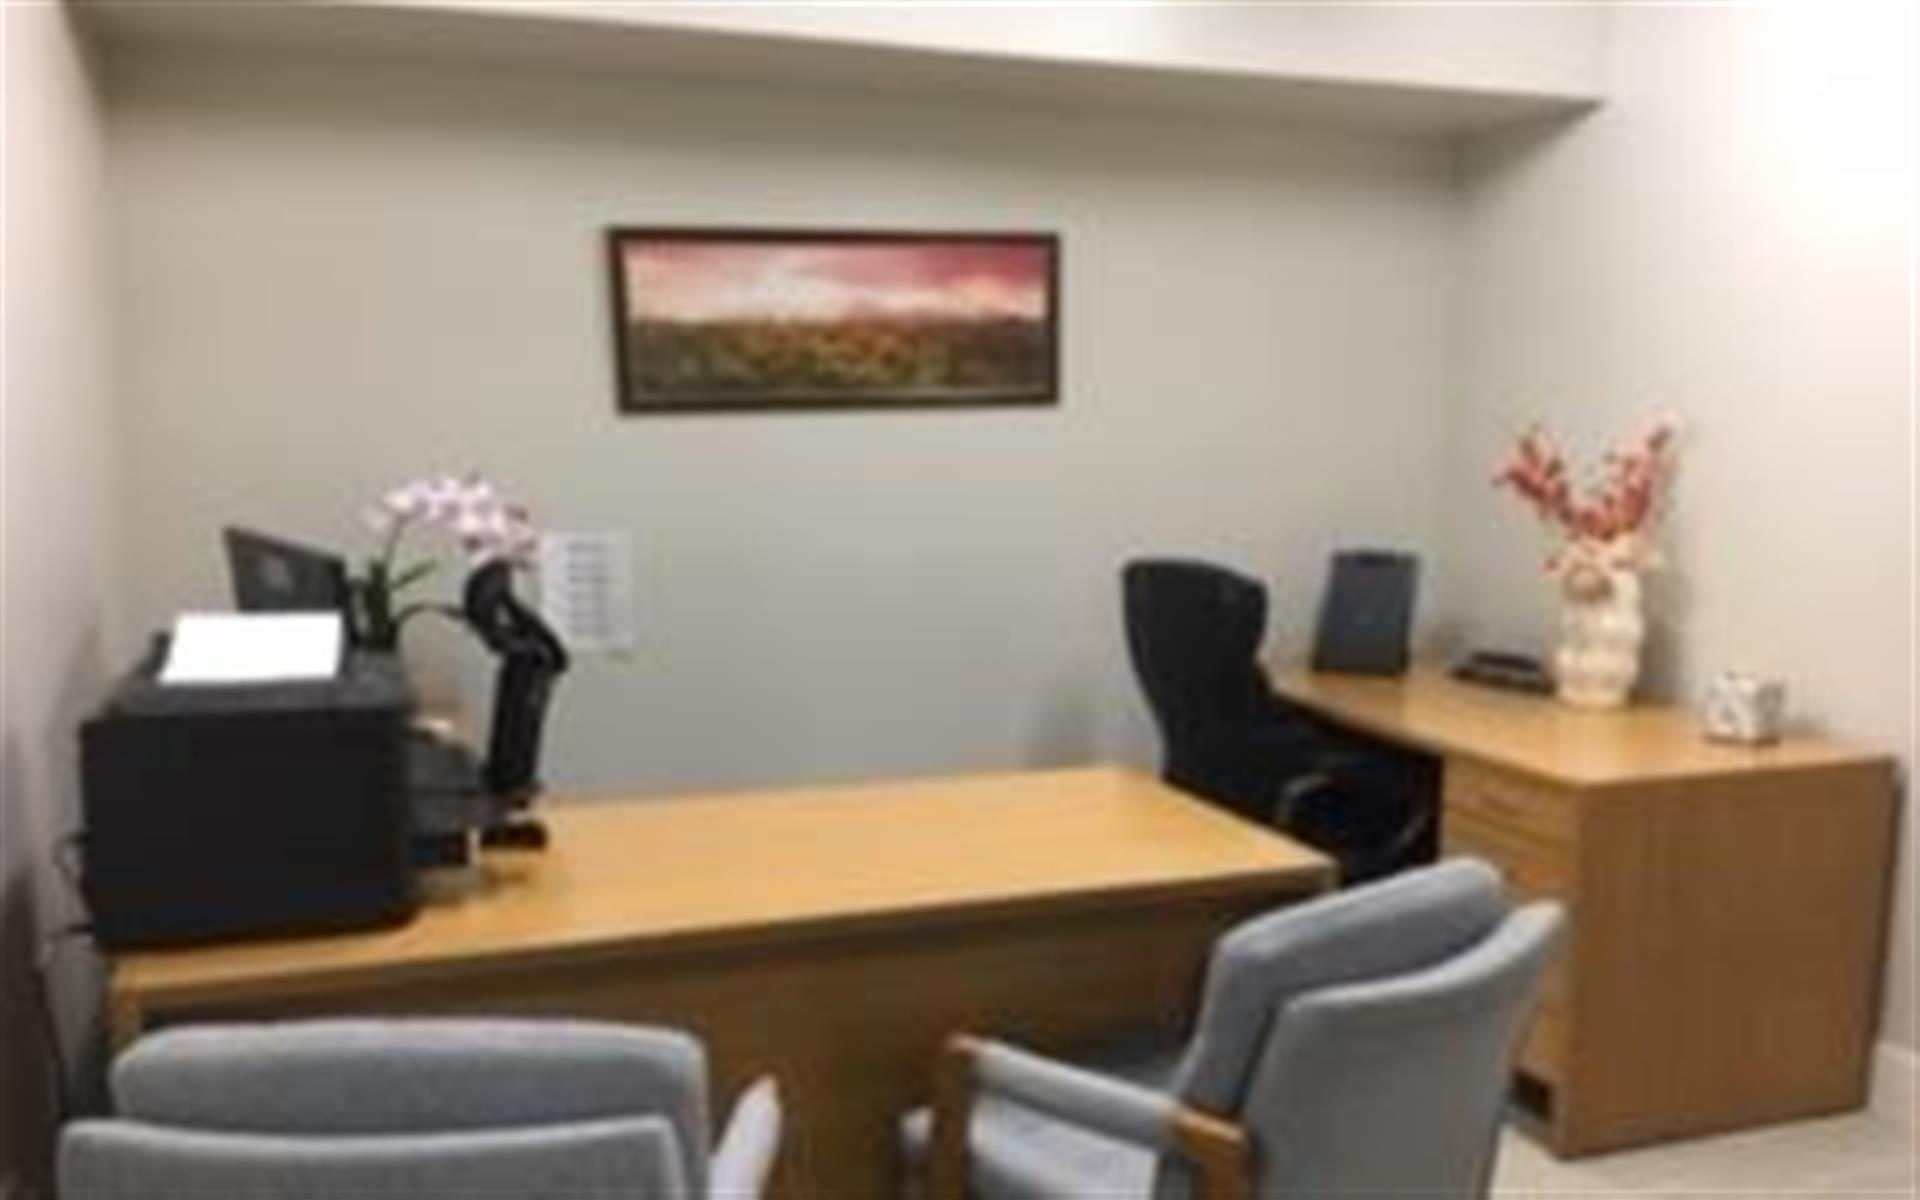 Professional Medical Careers Institute (PMCI) - Office for 2 or meeting room for 5